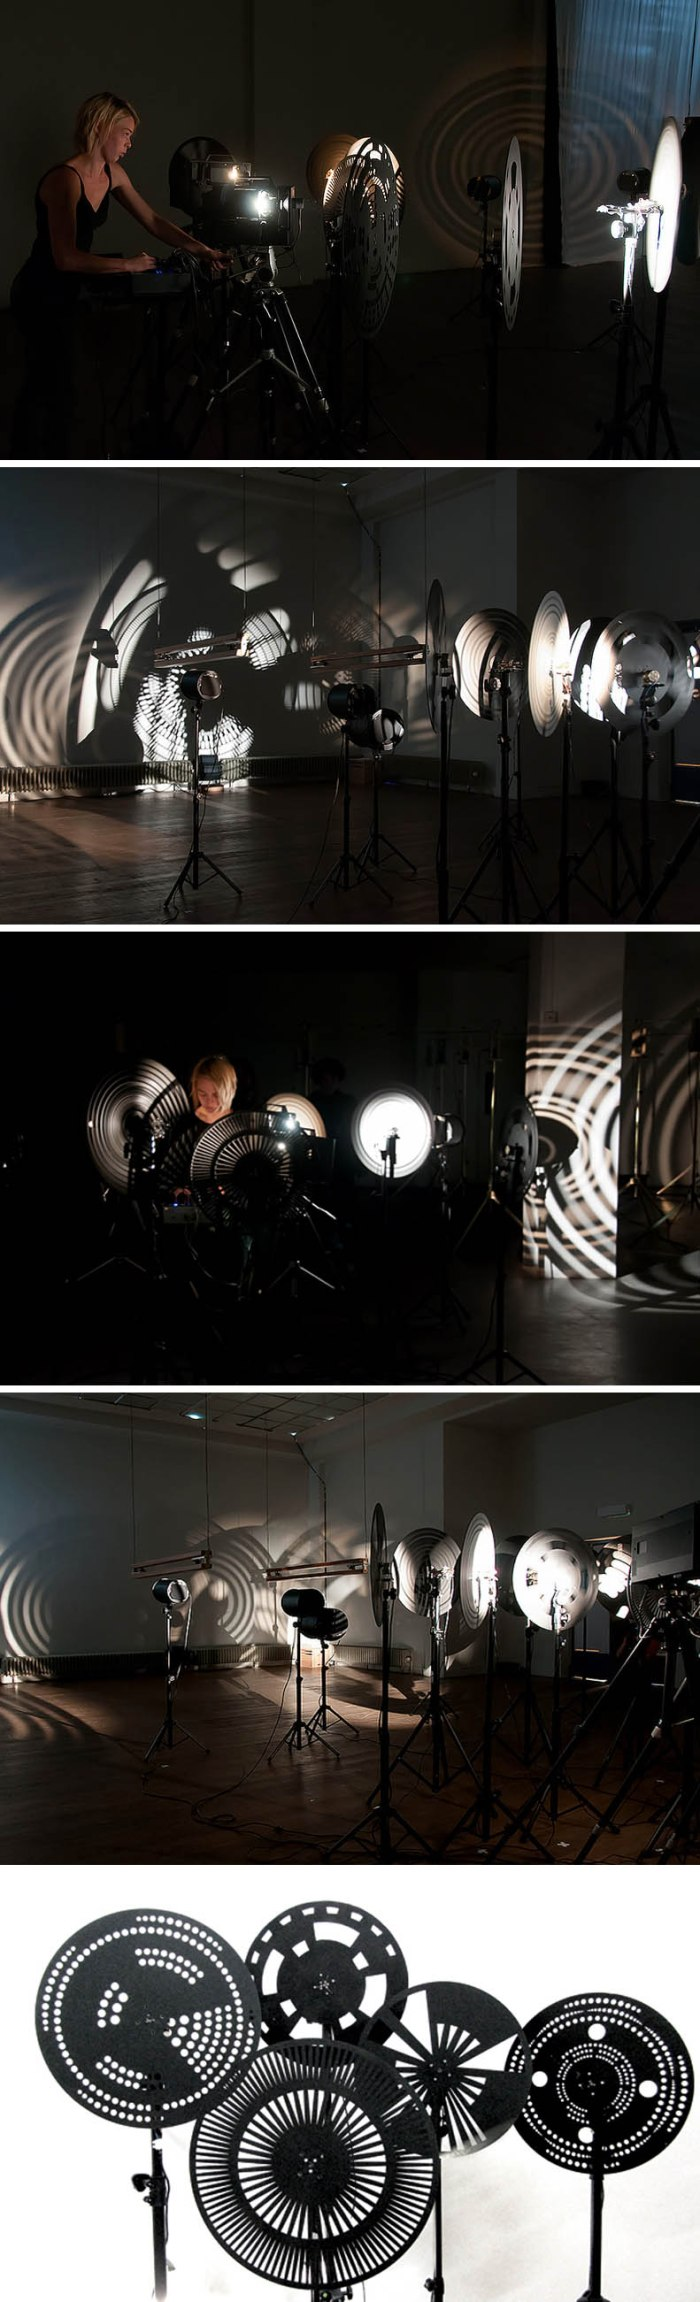 Light and performance art installation, Mariska de Groot, Royal Academy of Art, The Hague, cool installation